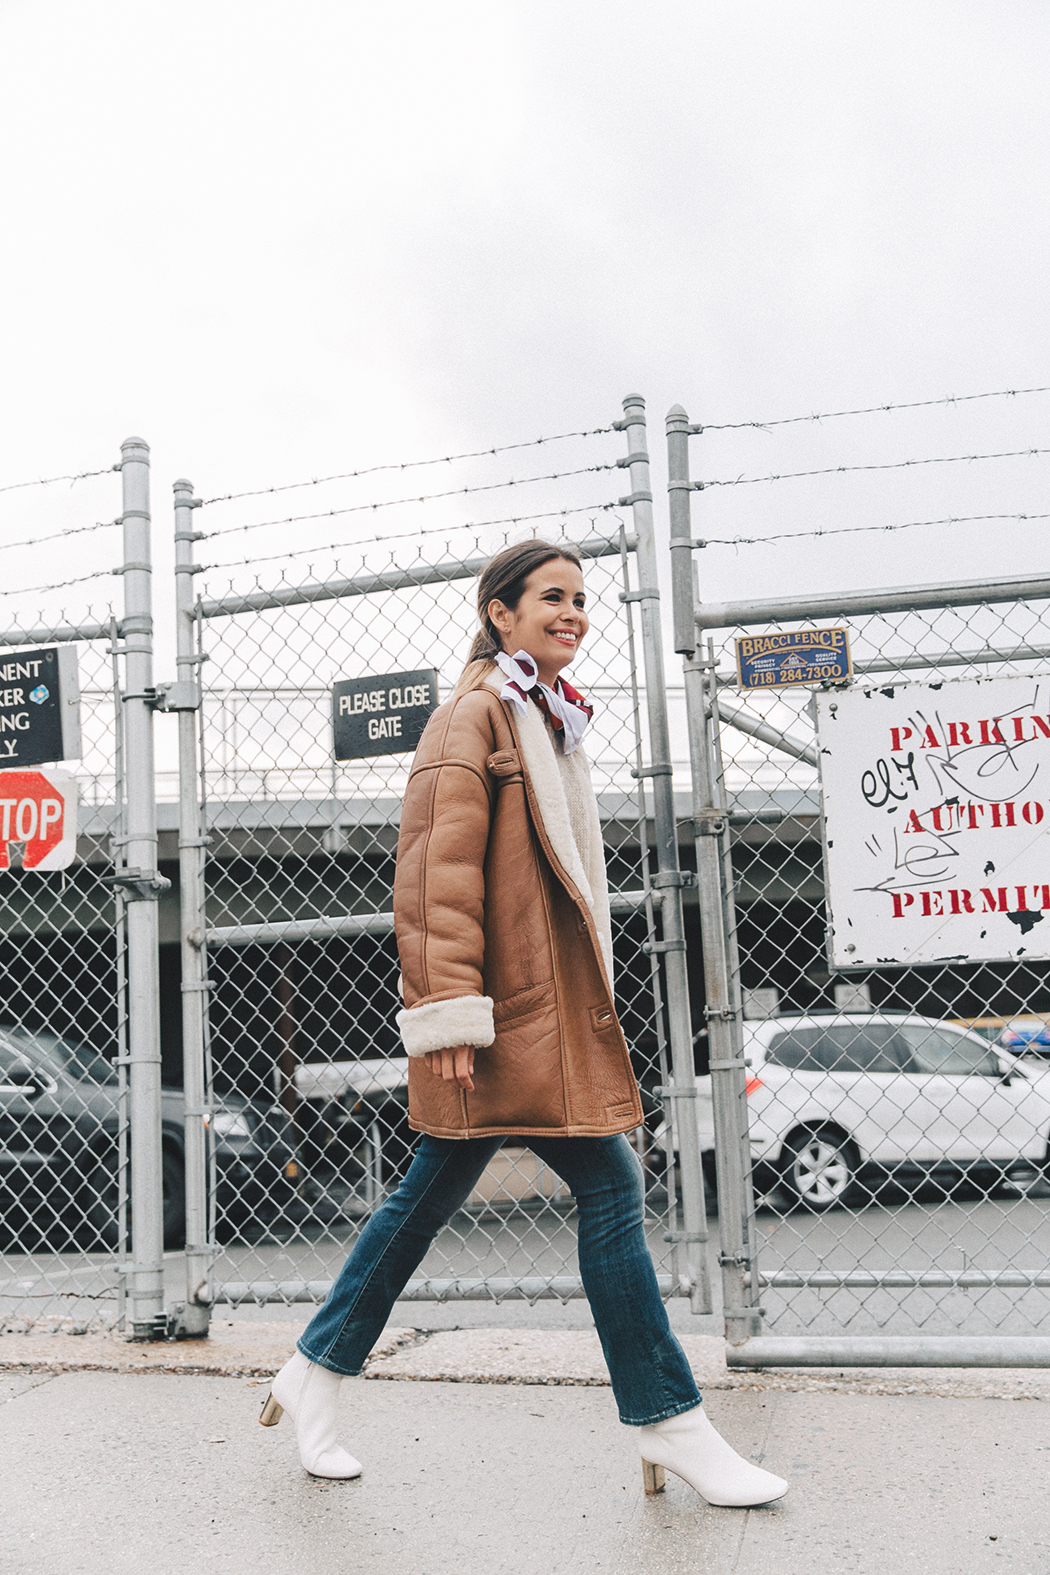 Collage_Vintage-Vintage_Coat-Jeans-Mother_Denim-Vintage_Scarf-White_Boots-Outfit-NYFW-Street_Style-Celine_Box-48